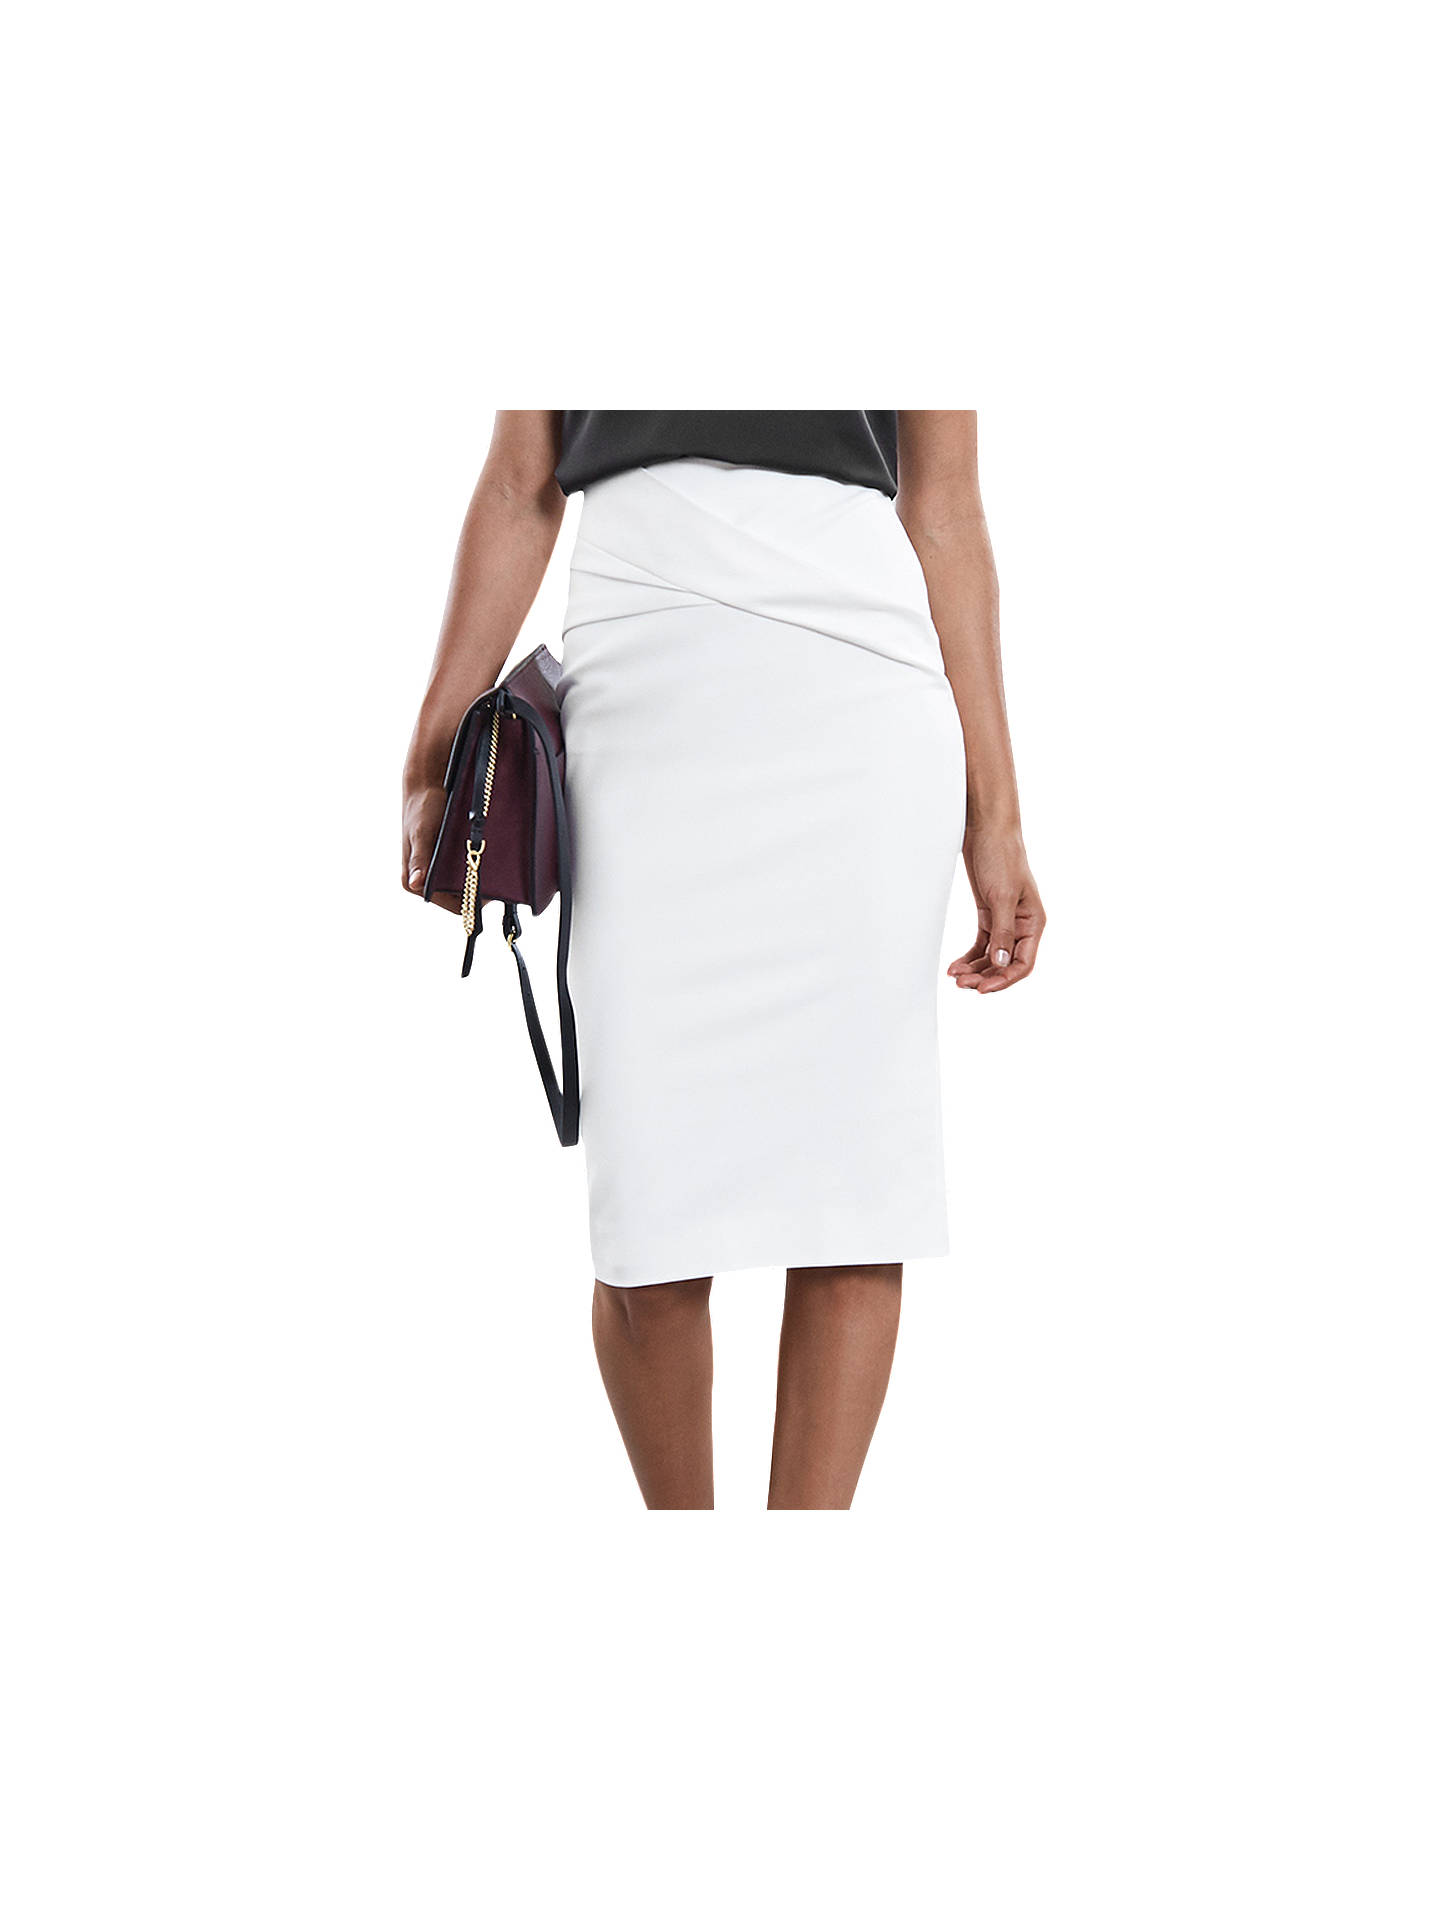 BuyReiss Jersey Pencil Skirt, Off White, 6 Online at johnlewis.com